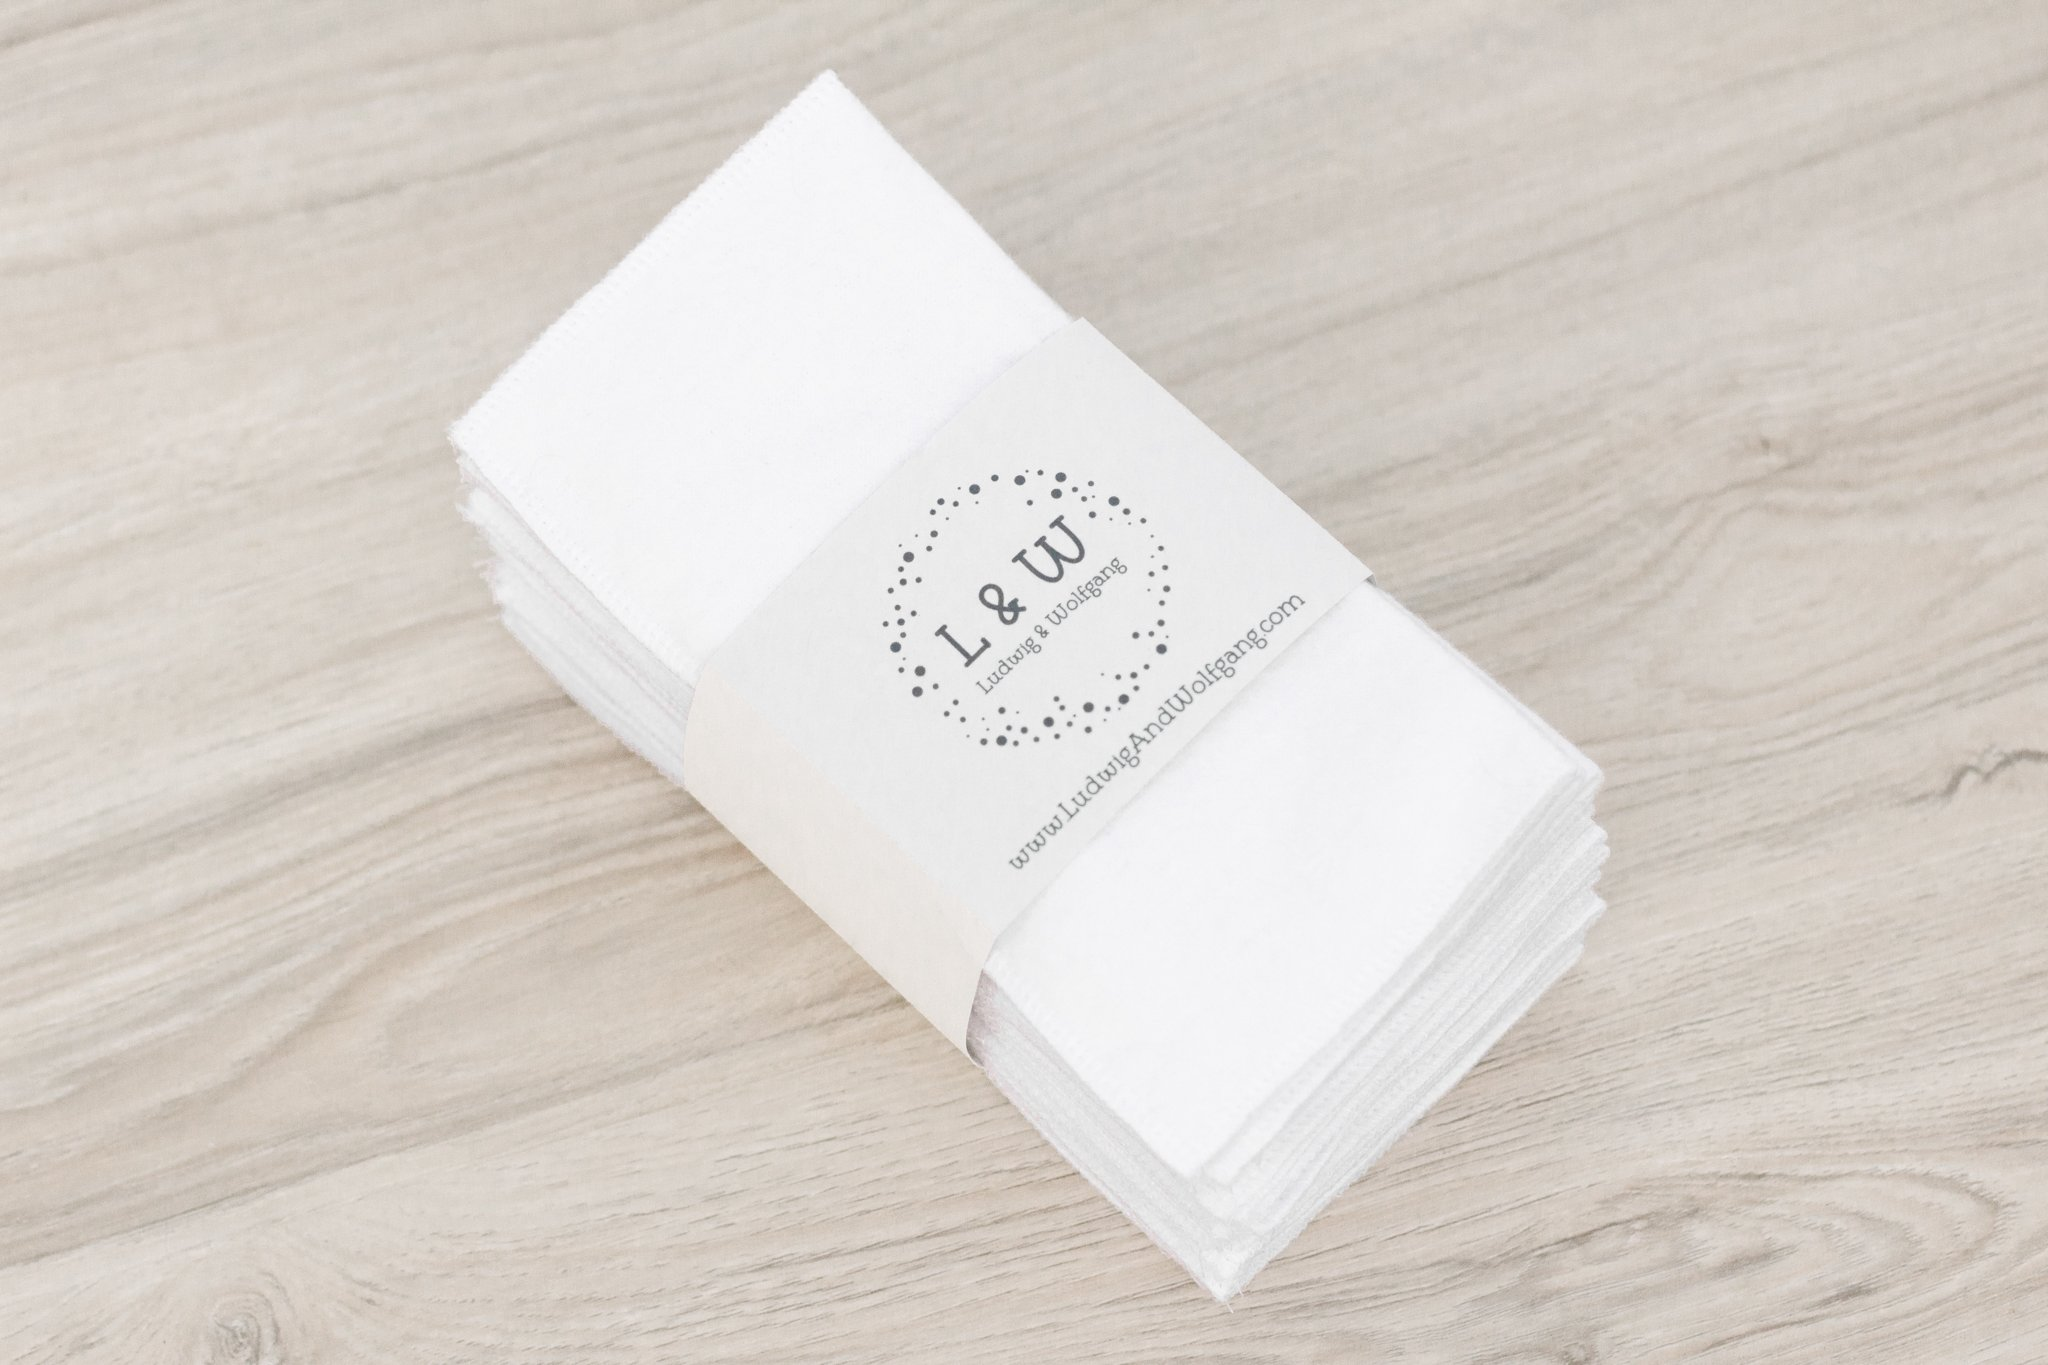 Bundle of Wipes (15 White, 2-Ply Flannel)